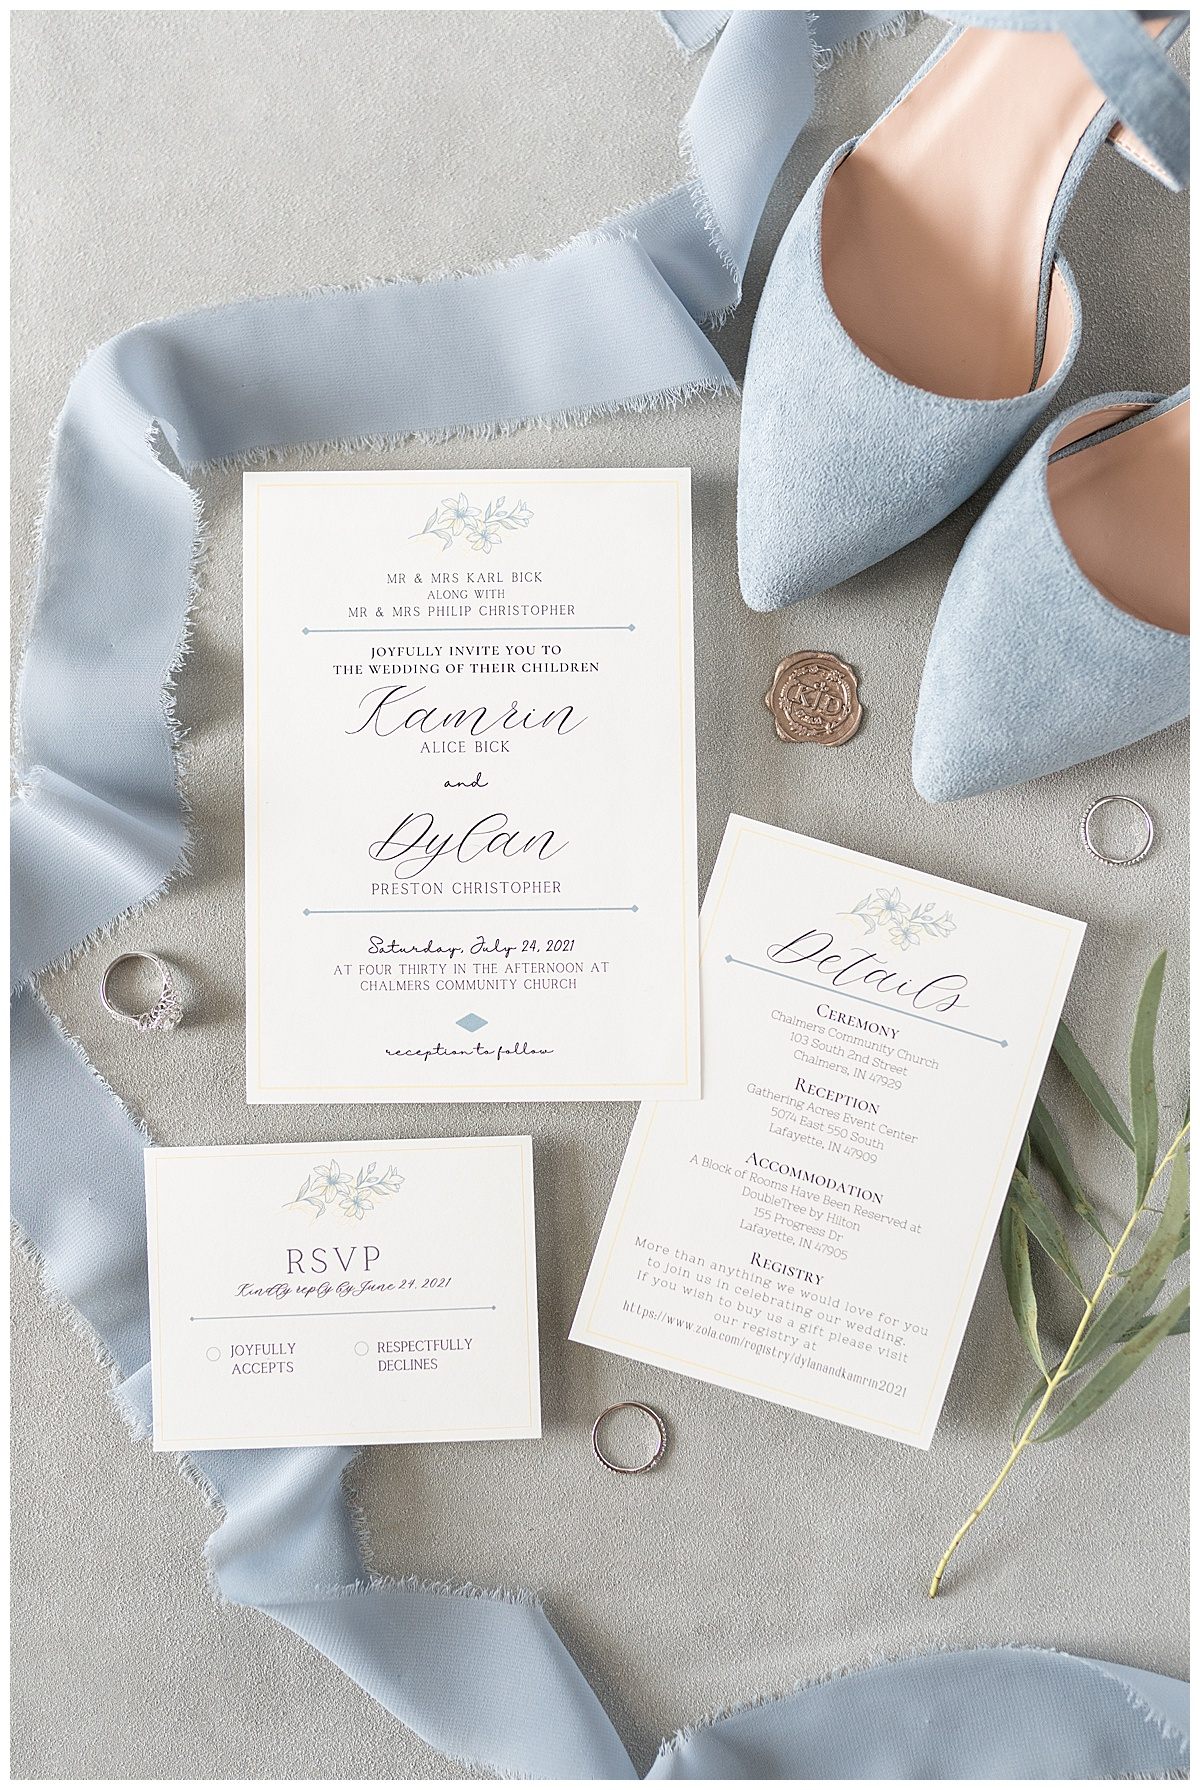 Invitation details for Gathering Acres wedding in Lafayette, Indiana